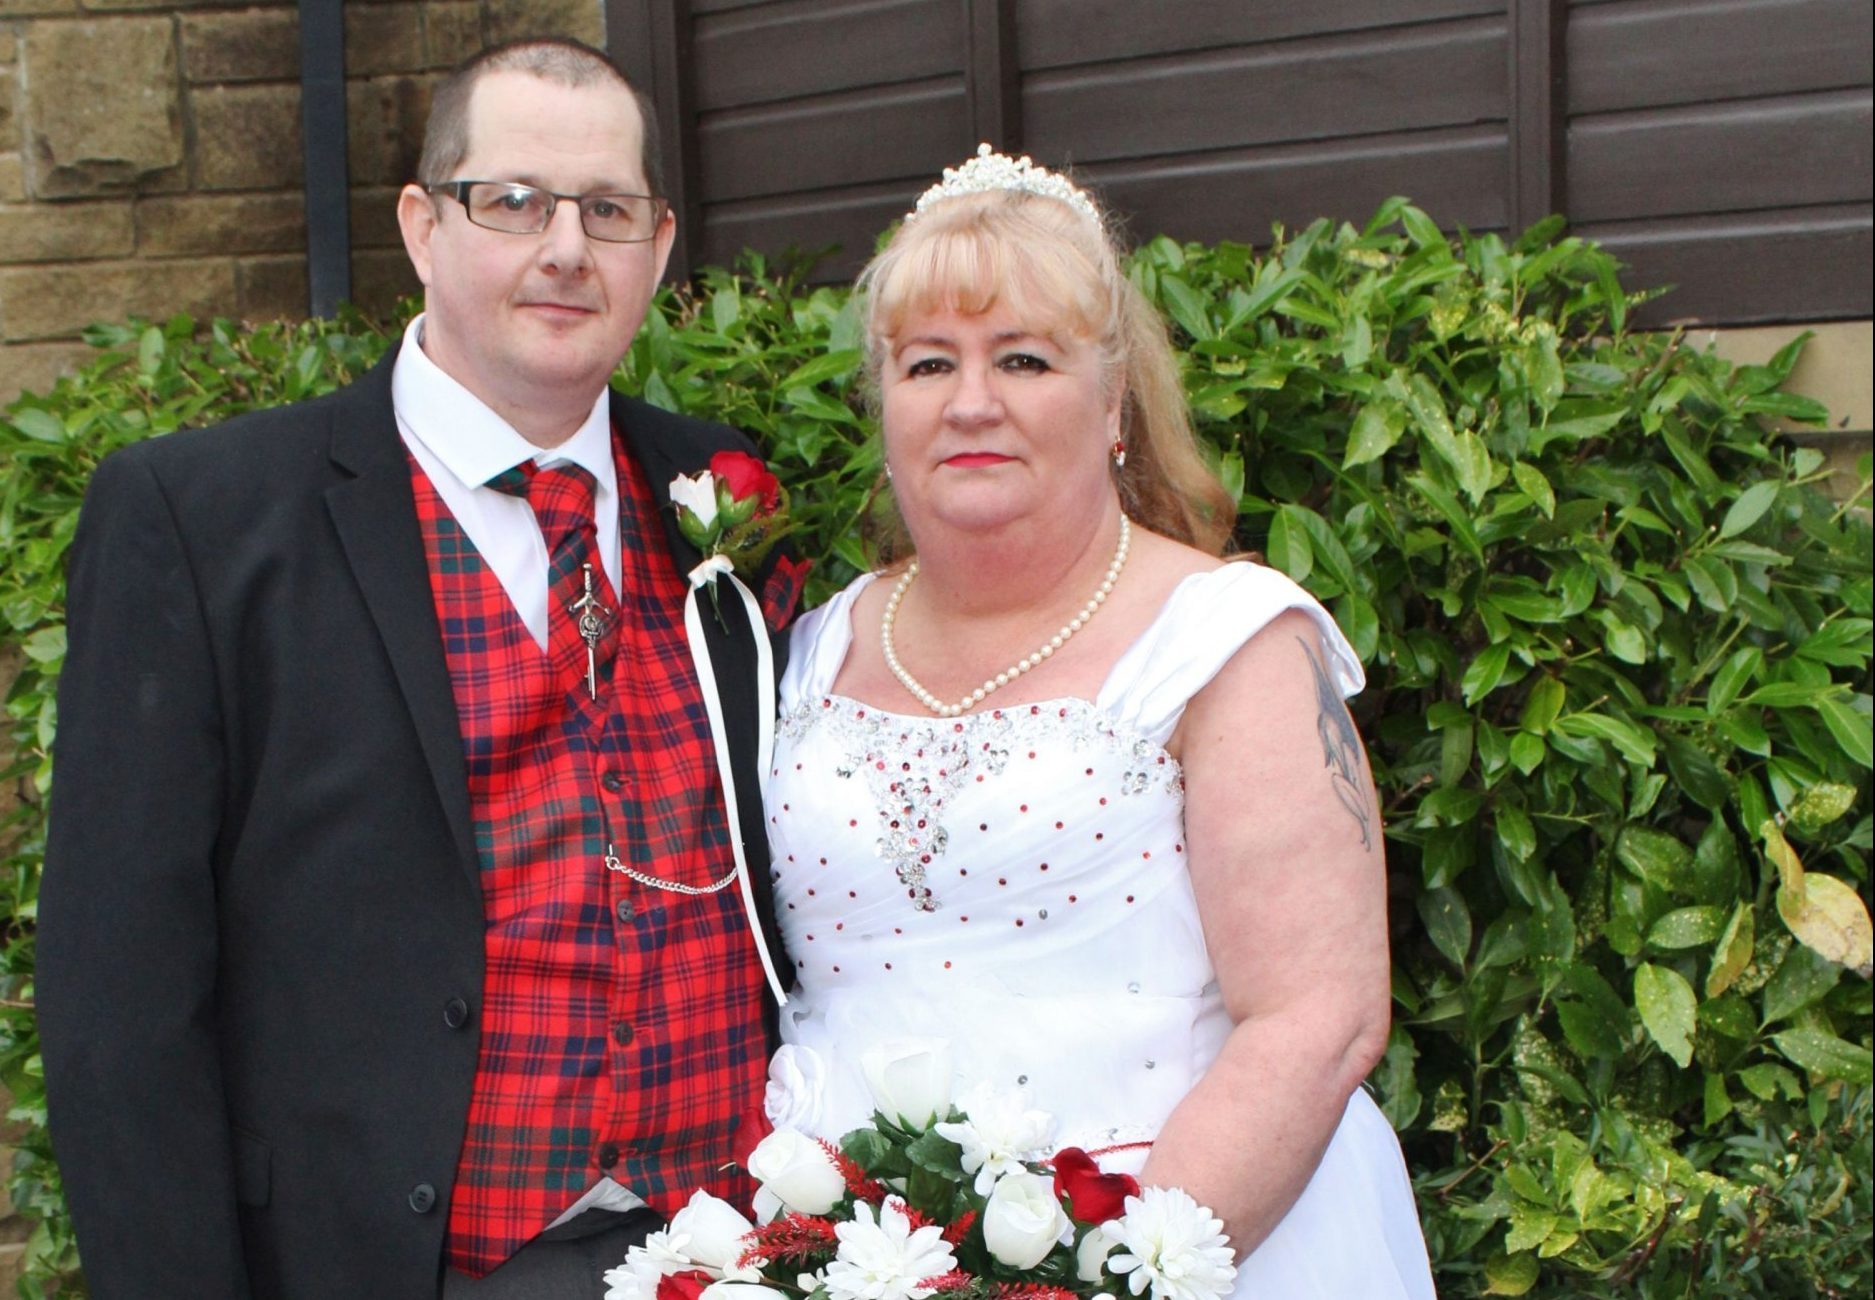 PIC FROM Lauren Batey/ Kennedy News (PICTURED: MARY MCTAGGART, 60, WITH HUSBAND PETER MCTAGGART, 46, ON THEIR WEDDING DAY IN JANUARY 2017) A clumsy hubby claims he accidentally saved his wife's number with one digit wrong - only to end up MARRYING the woman who he sent the misdirected text to. Former security guard Peter Mctaggart, 46, met his current wife Mary, 60, in 2003 after repeatedly texting her number - thinking it was his wife's. After receiving three texts from the stranger, Mary, who was also married to someone else at the time, responded to let Peter know he must have the wrong number. SEE KENNEDY NEWS COPY - 0161 697 4266